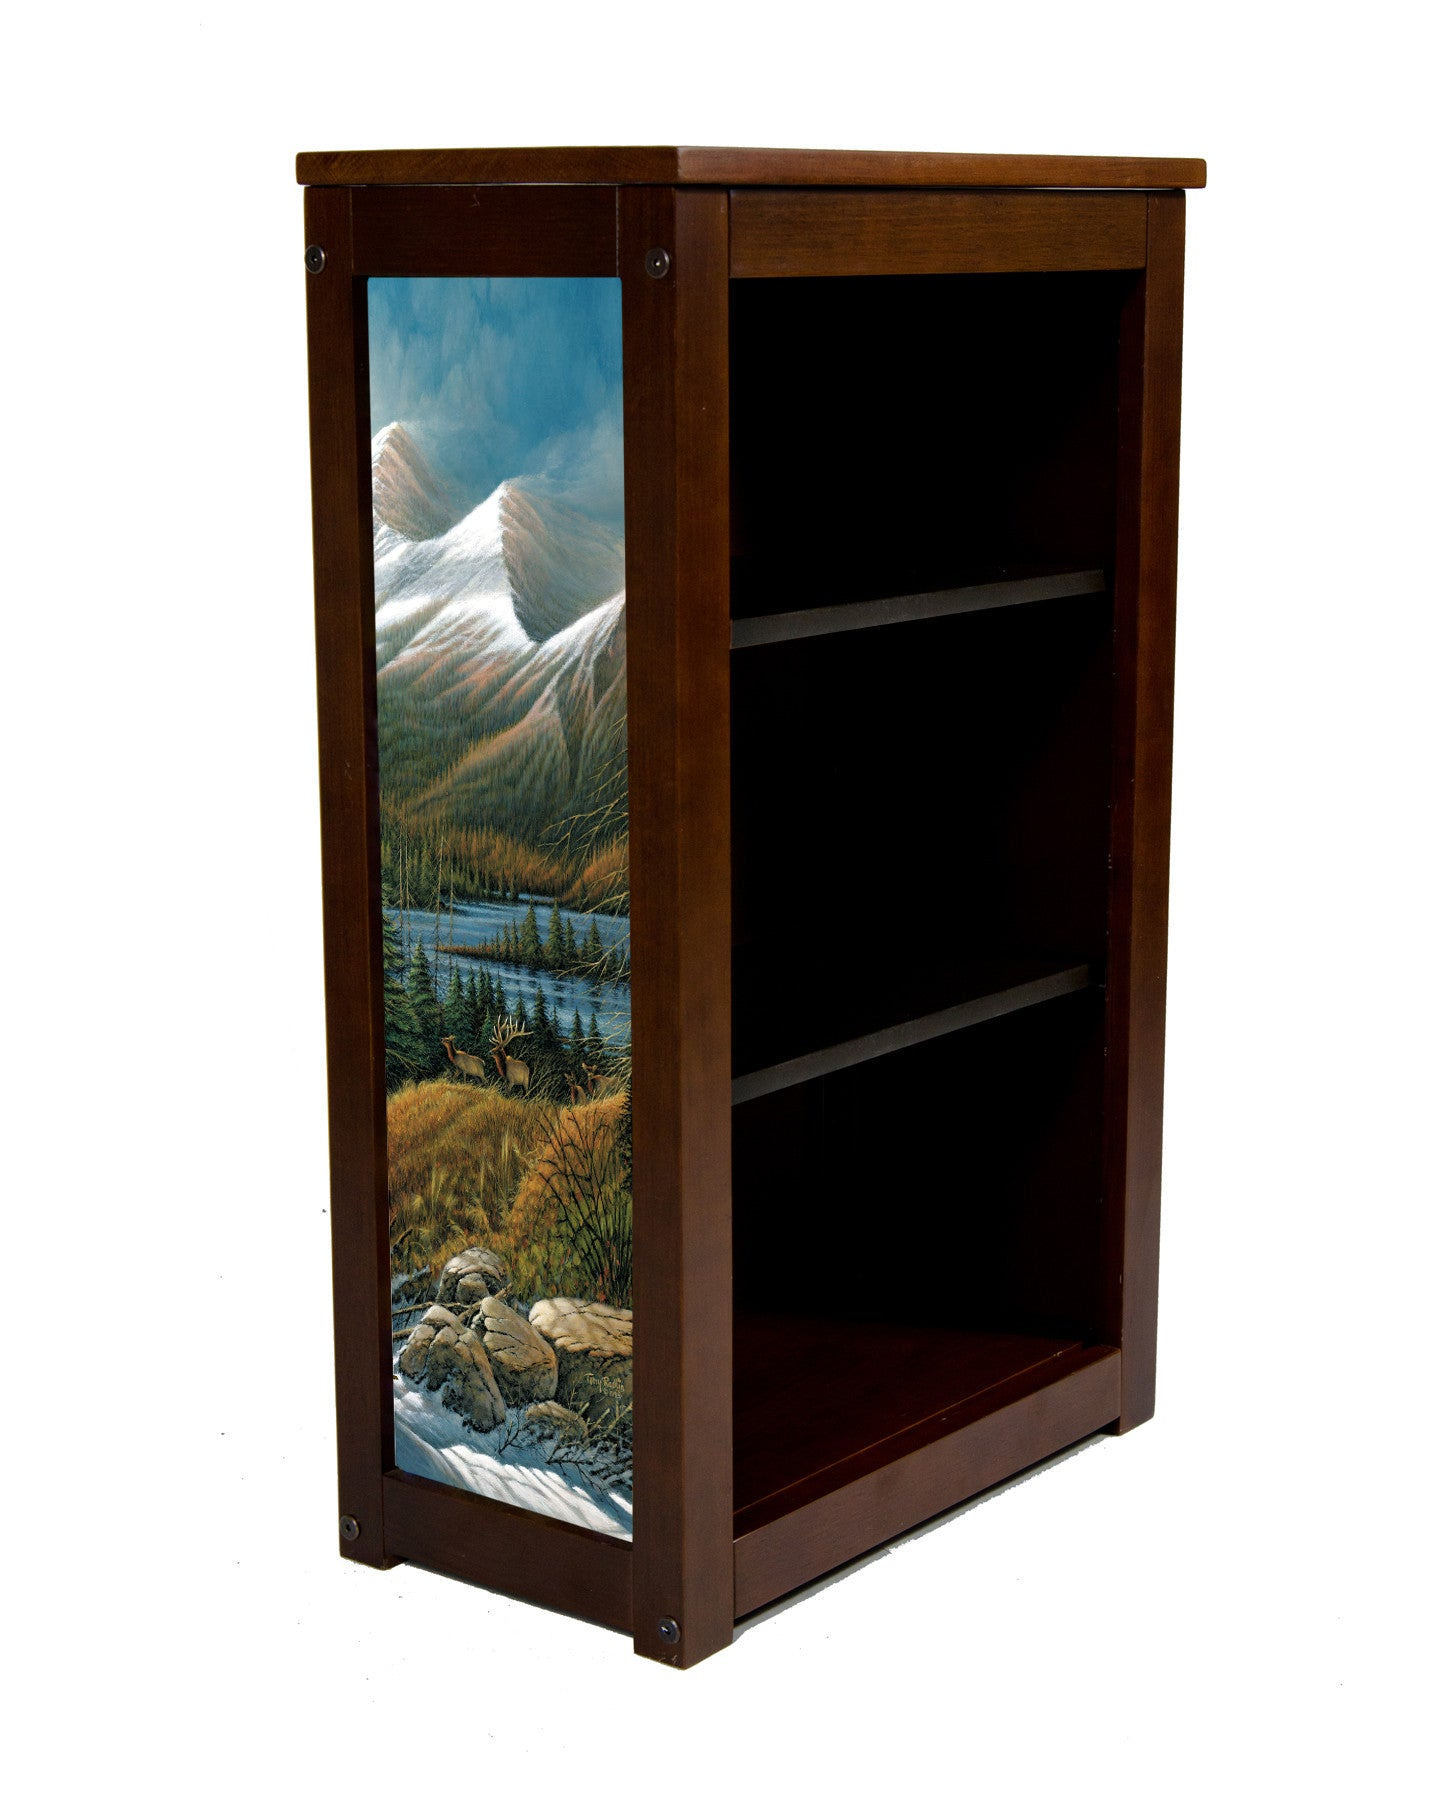 Elk Book Cabinet with Master of the Valley-Art byTerry Redlin